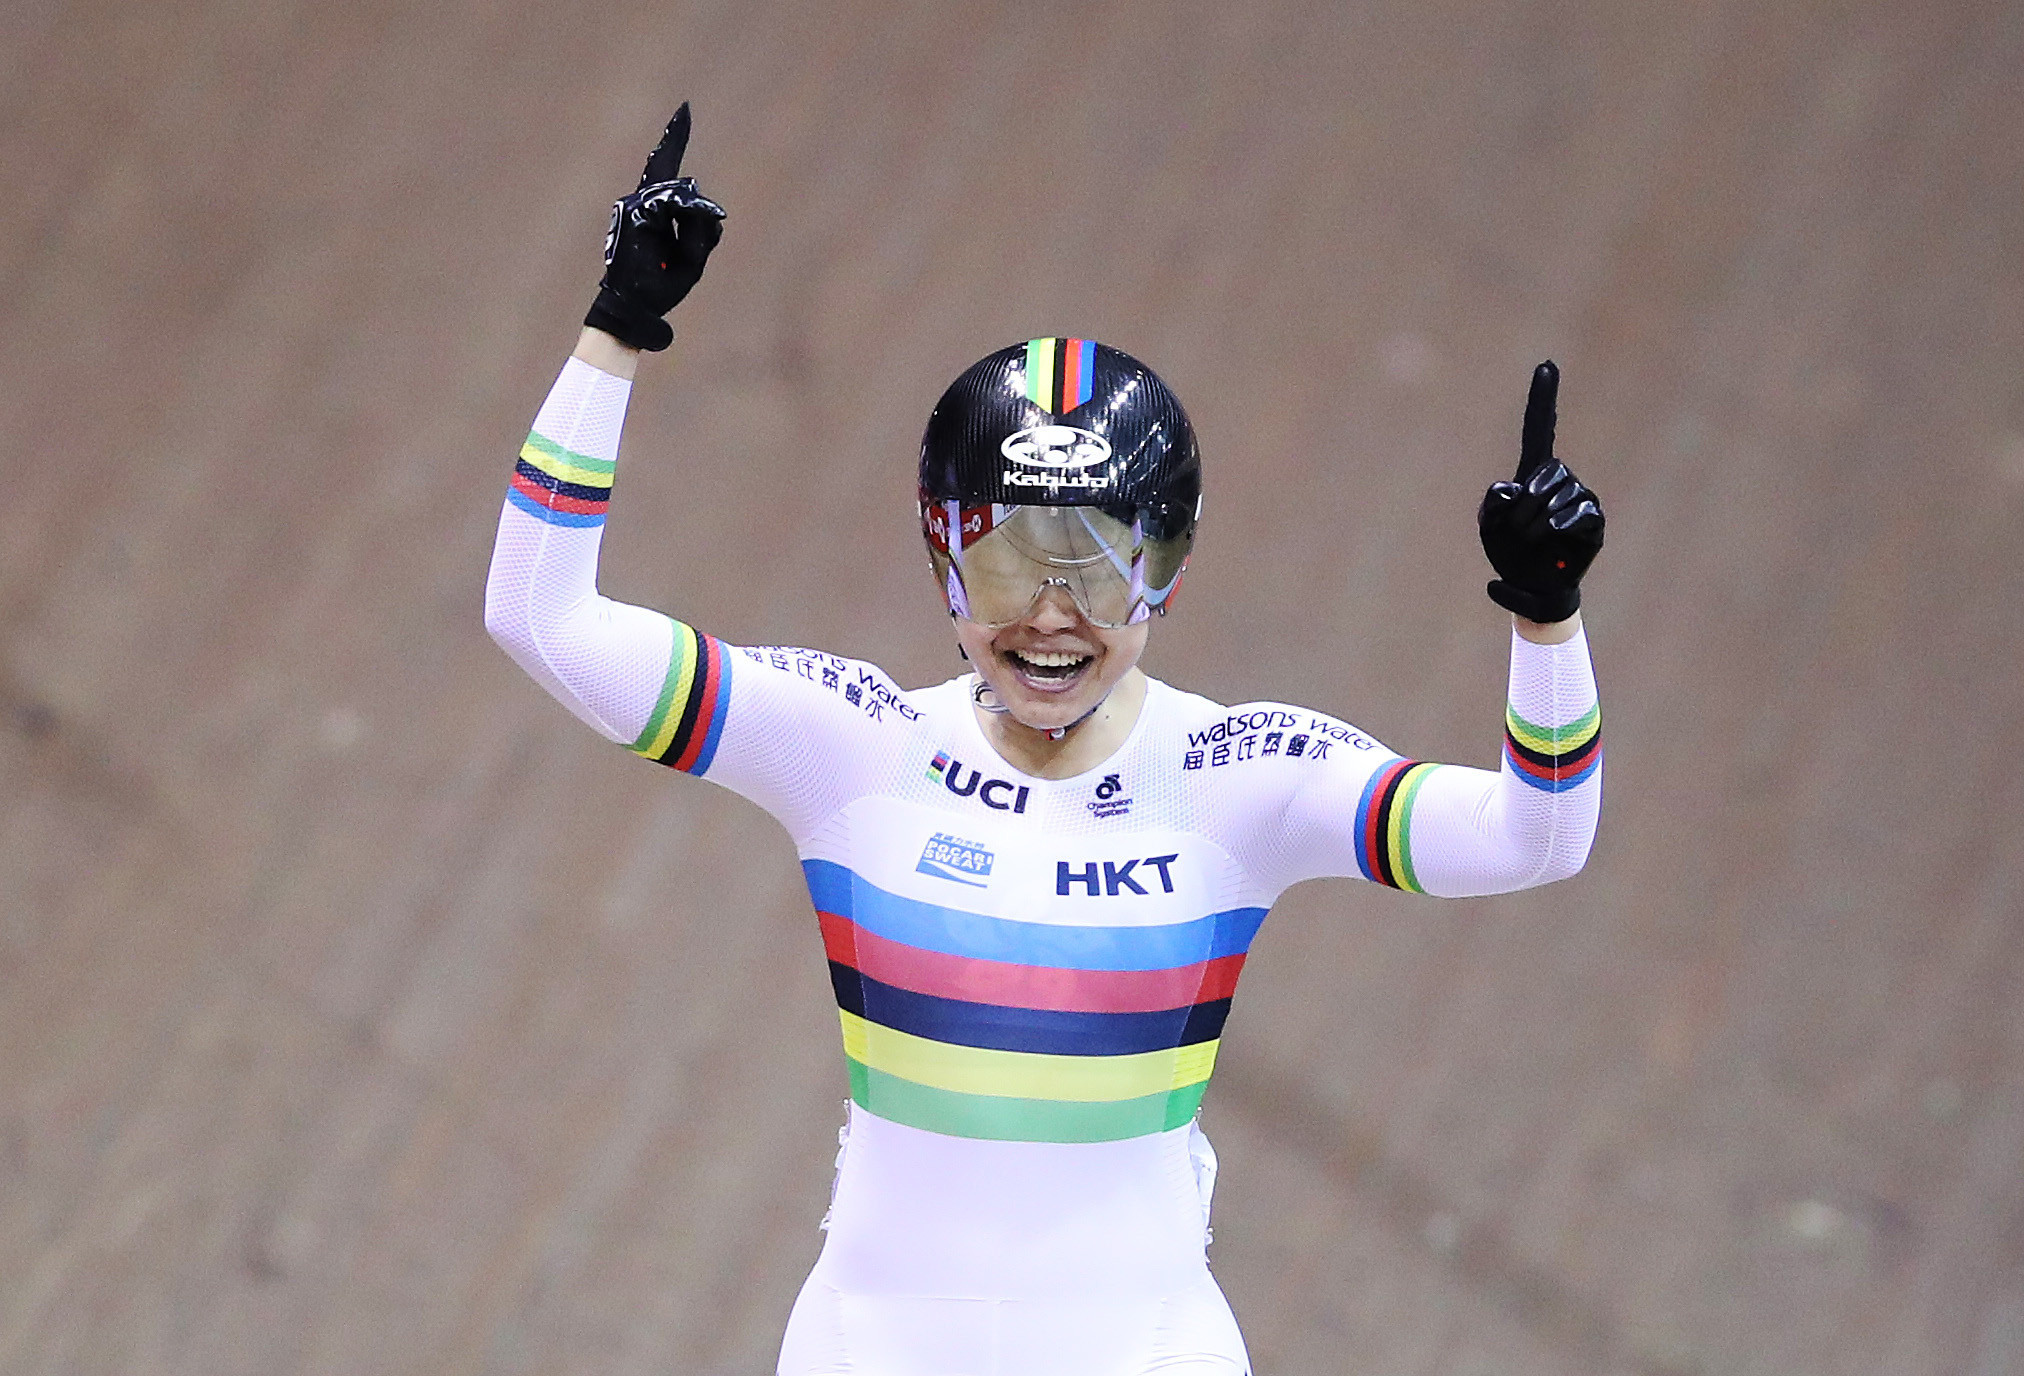 Lee sprints to victory at UCI Track World Cup in Glasgow